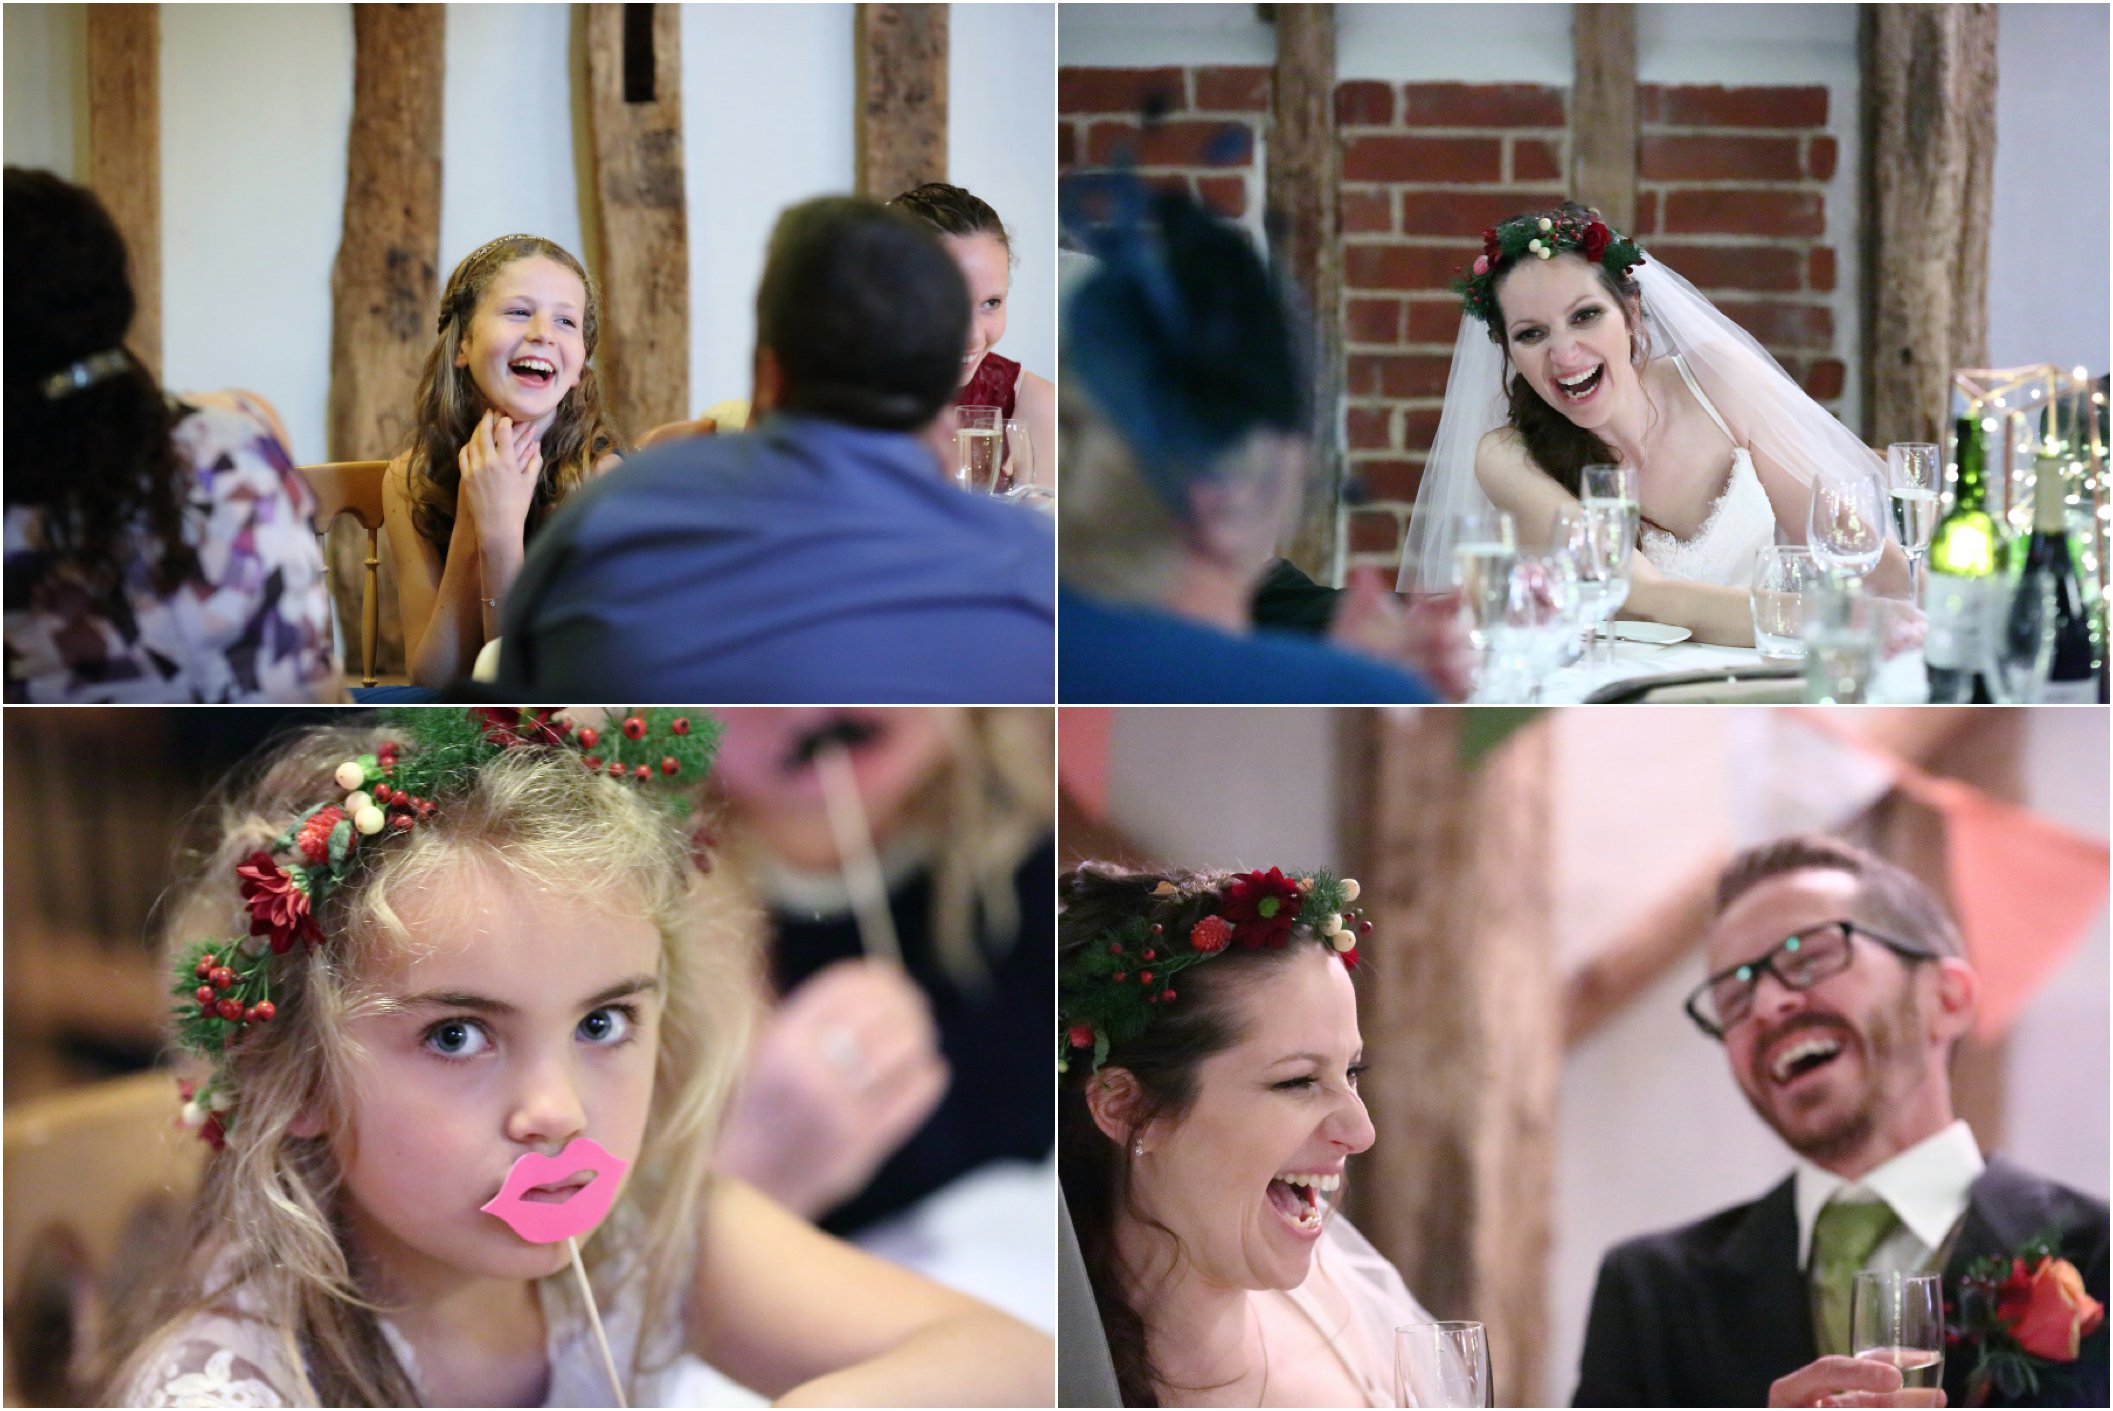 Laughter at rustic autumn wedding at Moreves barn, suffolk